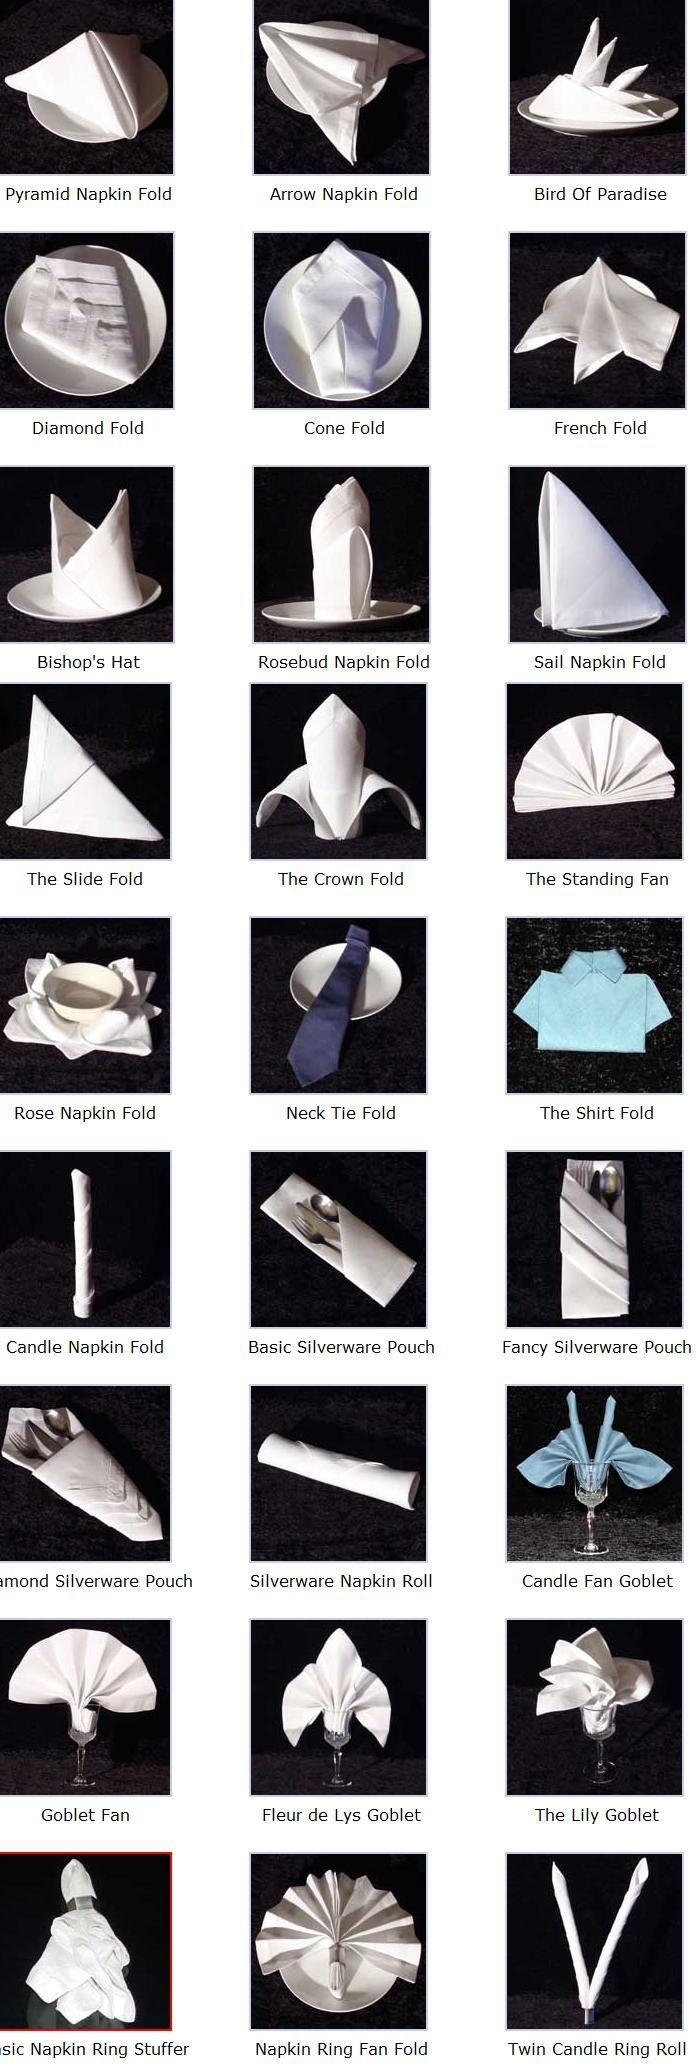 How To Make Table Napkin Designs how to arrow napkin fold Fold A Napkin So Cool A Chart Step By Step On Napkin How To Fold Napkinsfolding